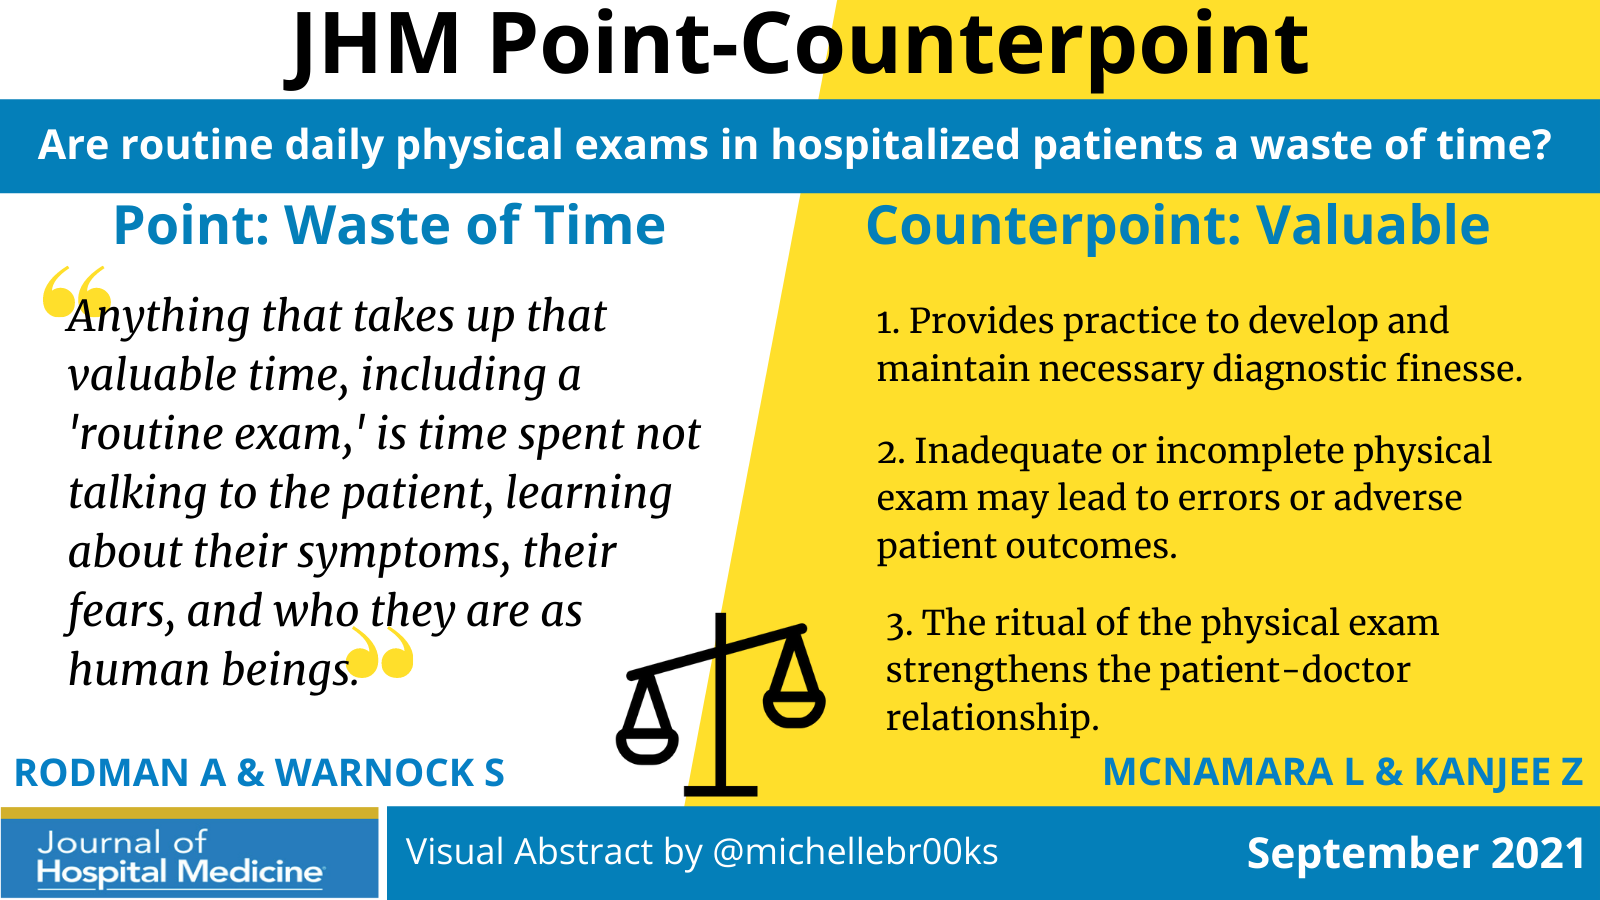 Point: Routine Daily Physical Exams in Hospitalized Patients Are a Waste of Time